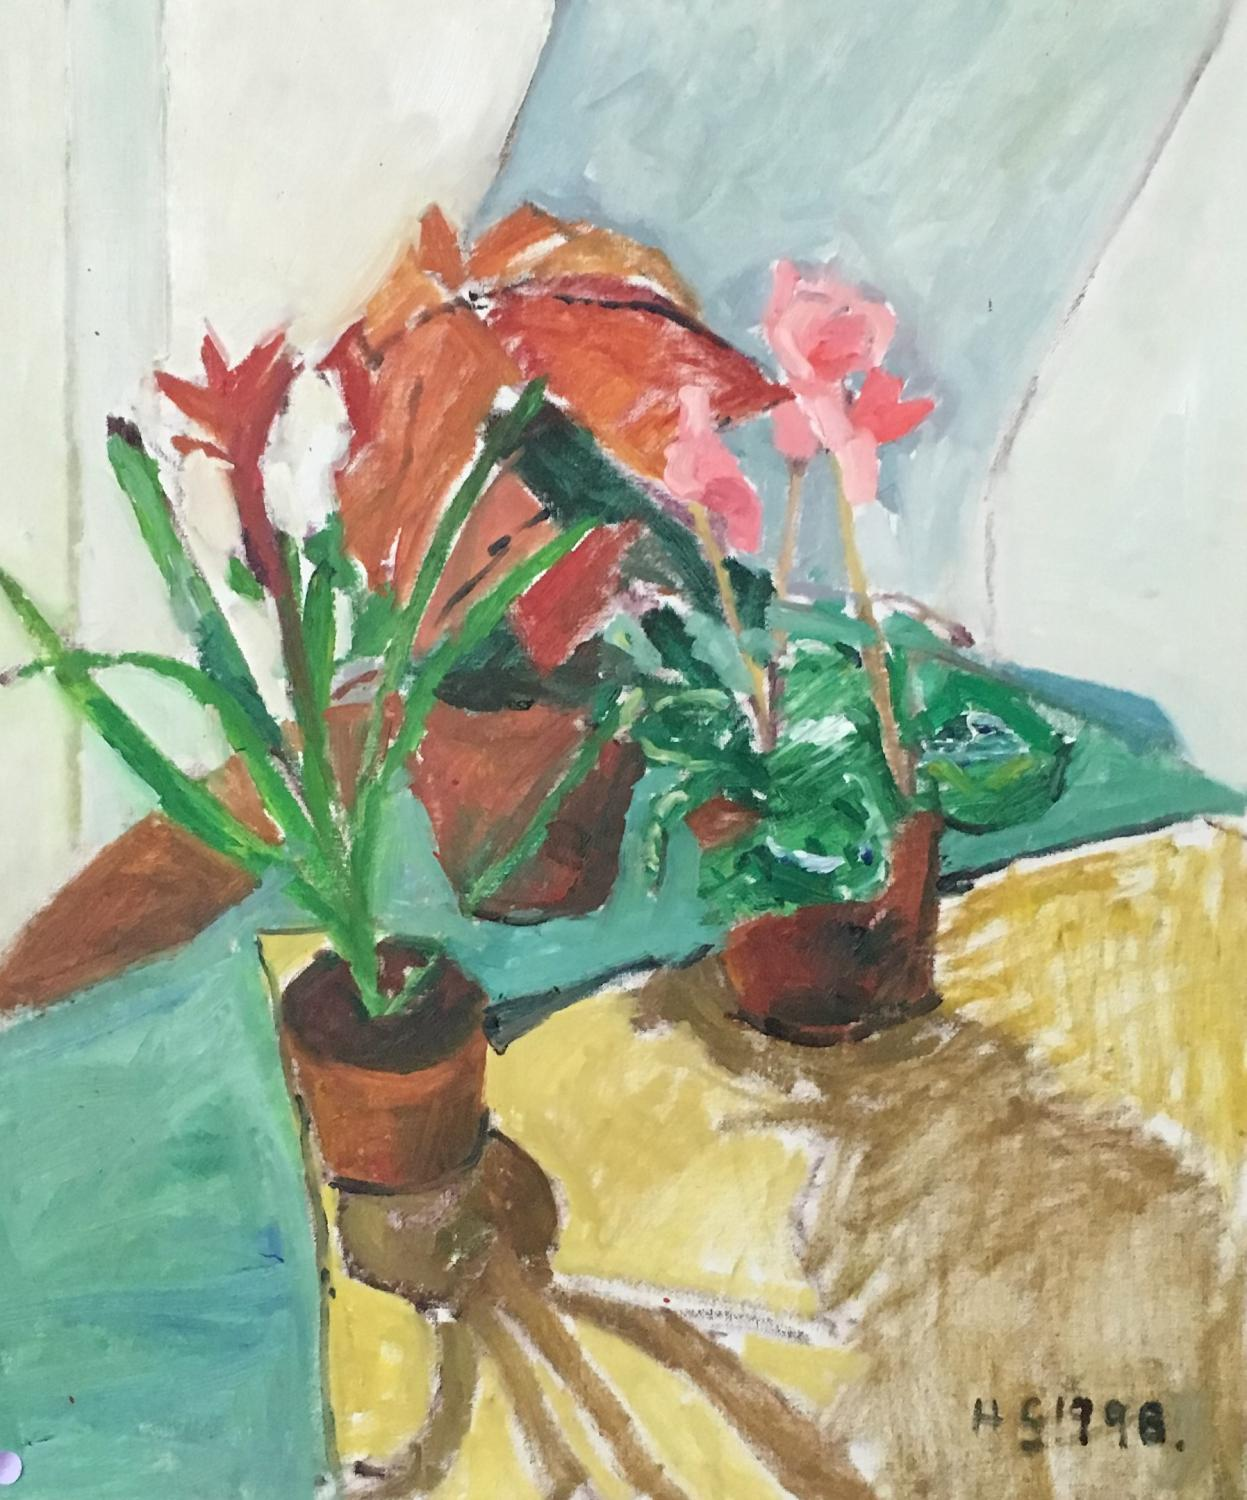 Potted Plants by Nicolas Gage